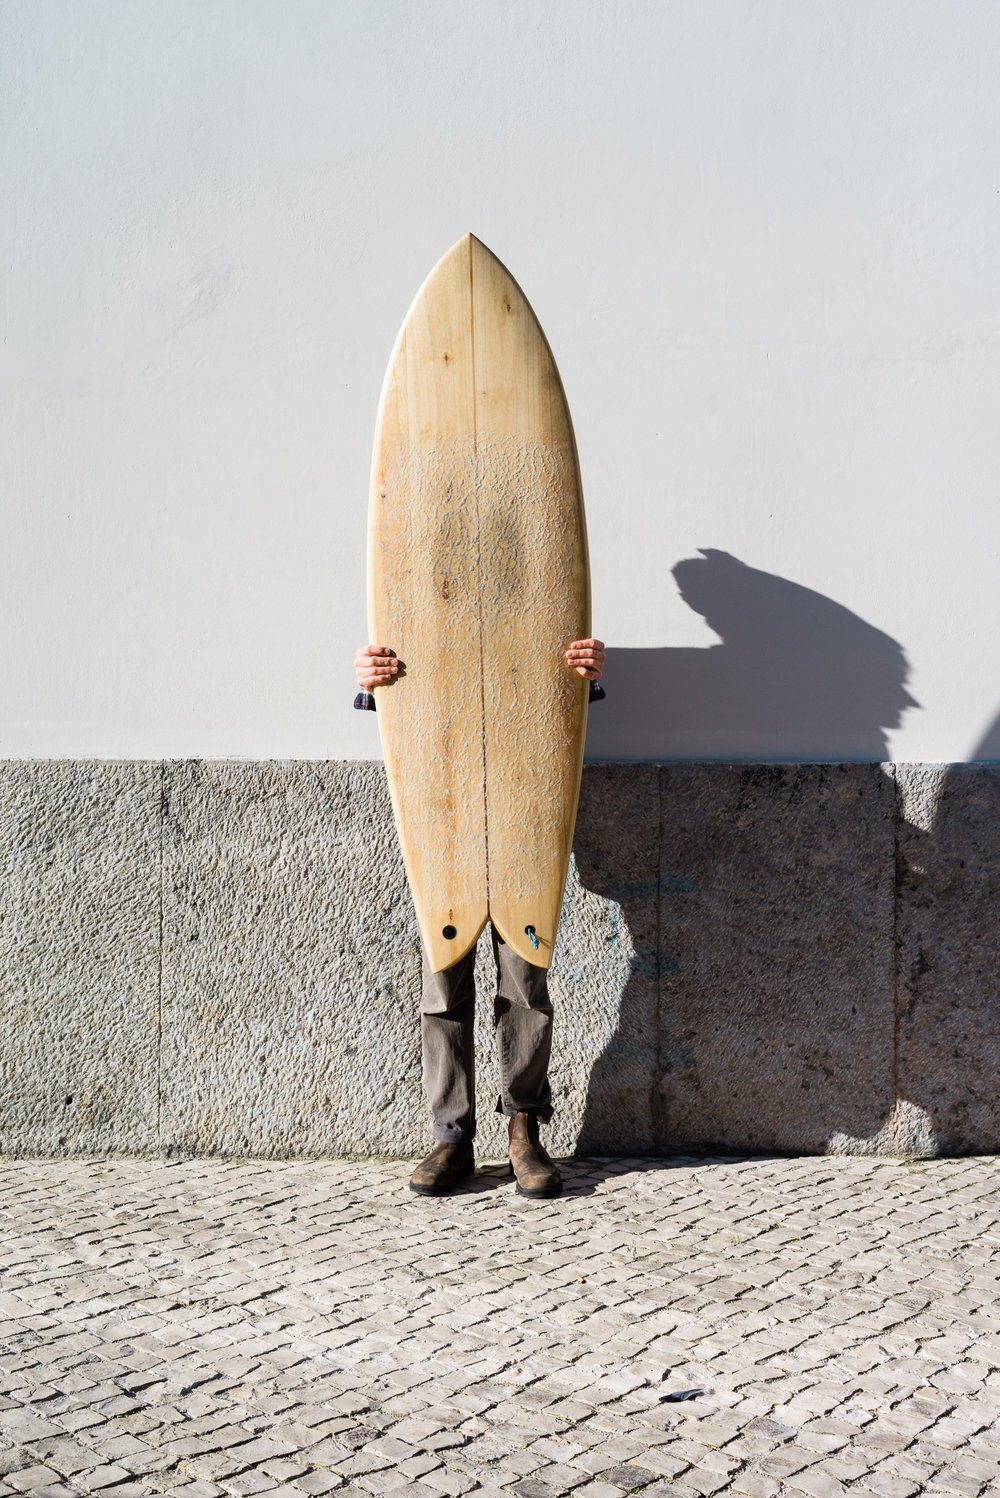 Want more Antoine? - You can follow Antoine on Instagram and Facebook.Antoine regularly holds workshops in Lisbon, where people can build their own surfboard. You'll start as a rookie but you'll leave with a self-made, finished surfboard.Interested? Contact Antoine on Instagram.